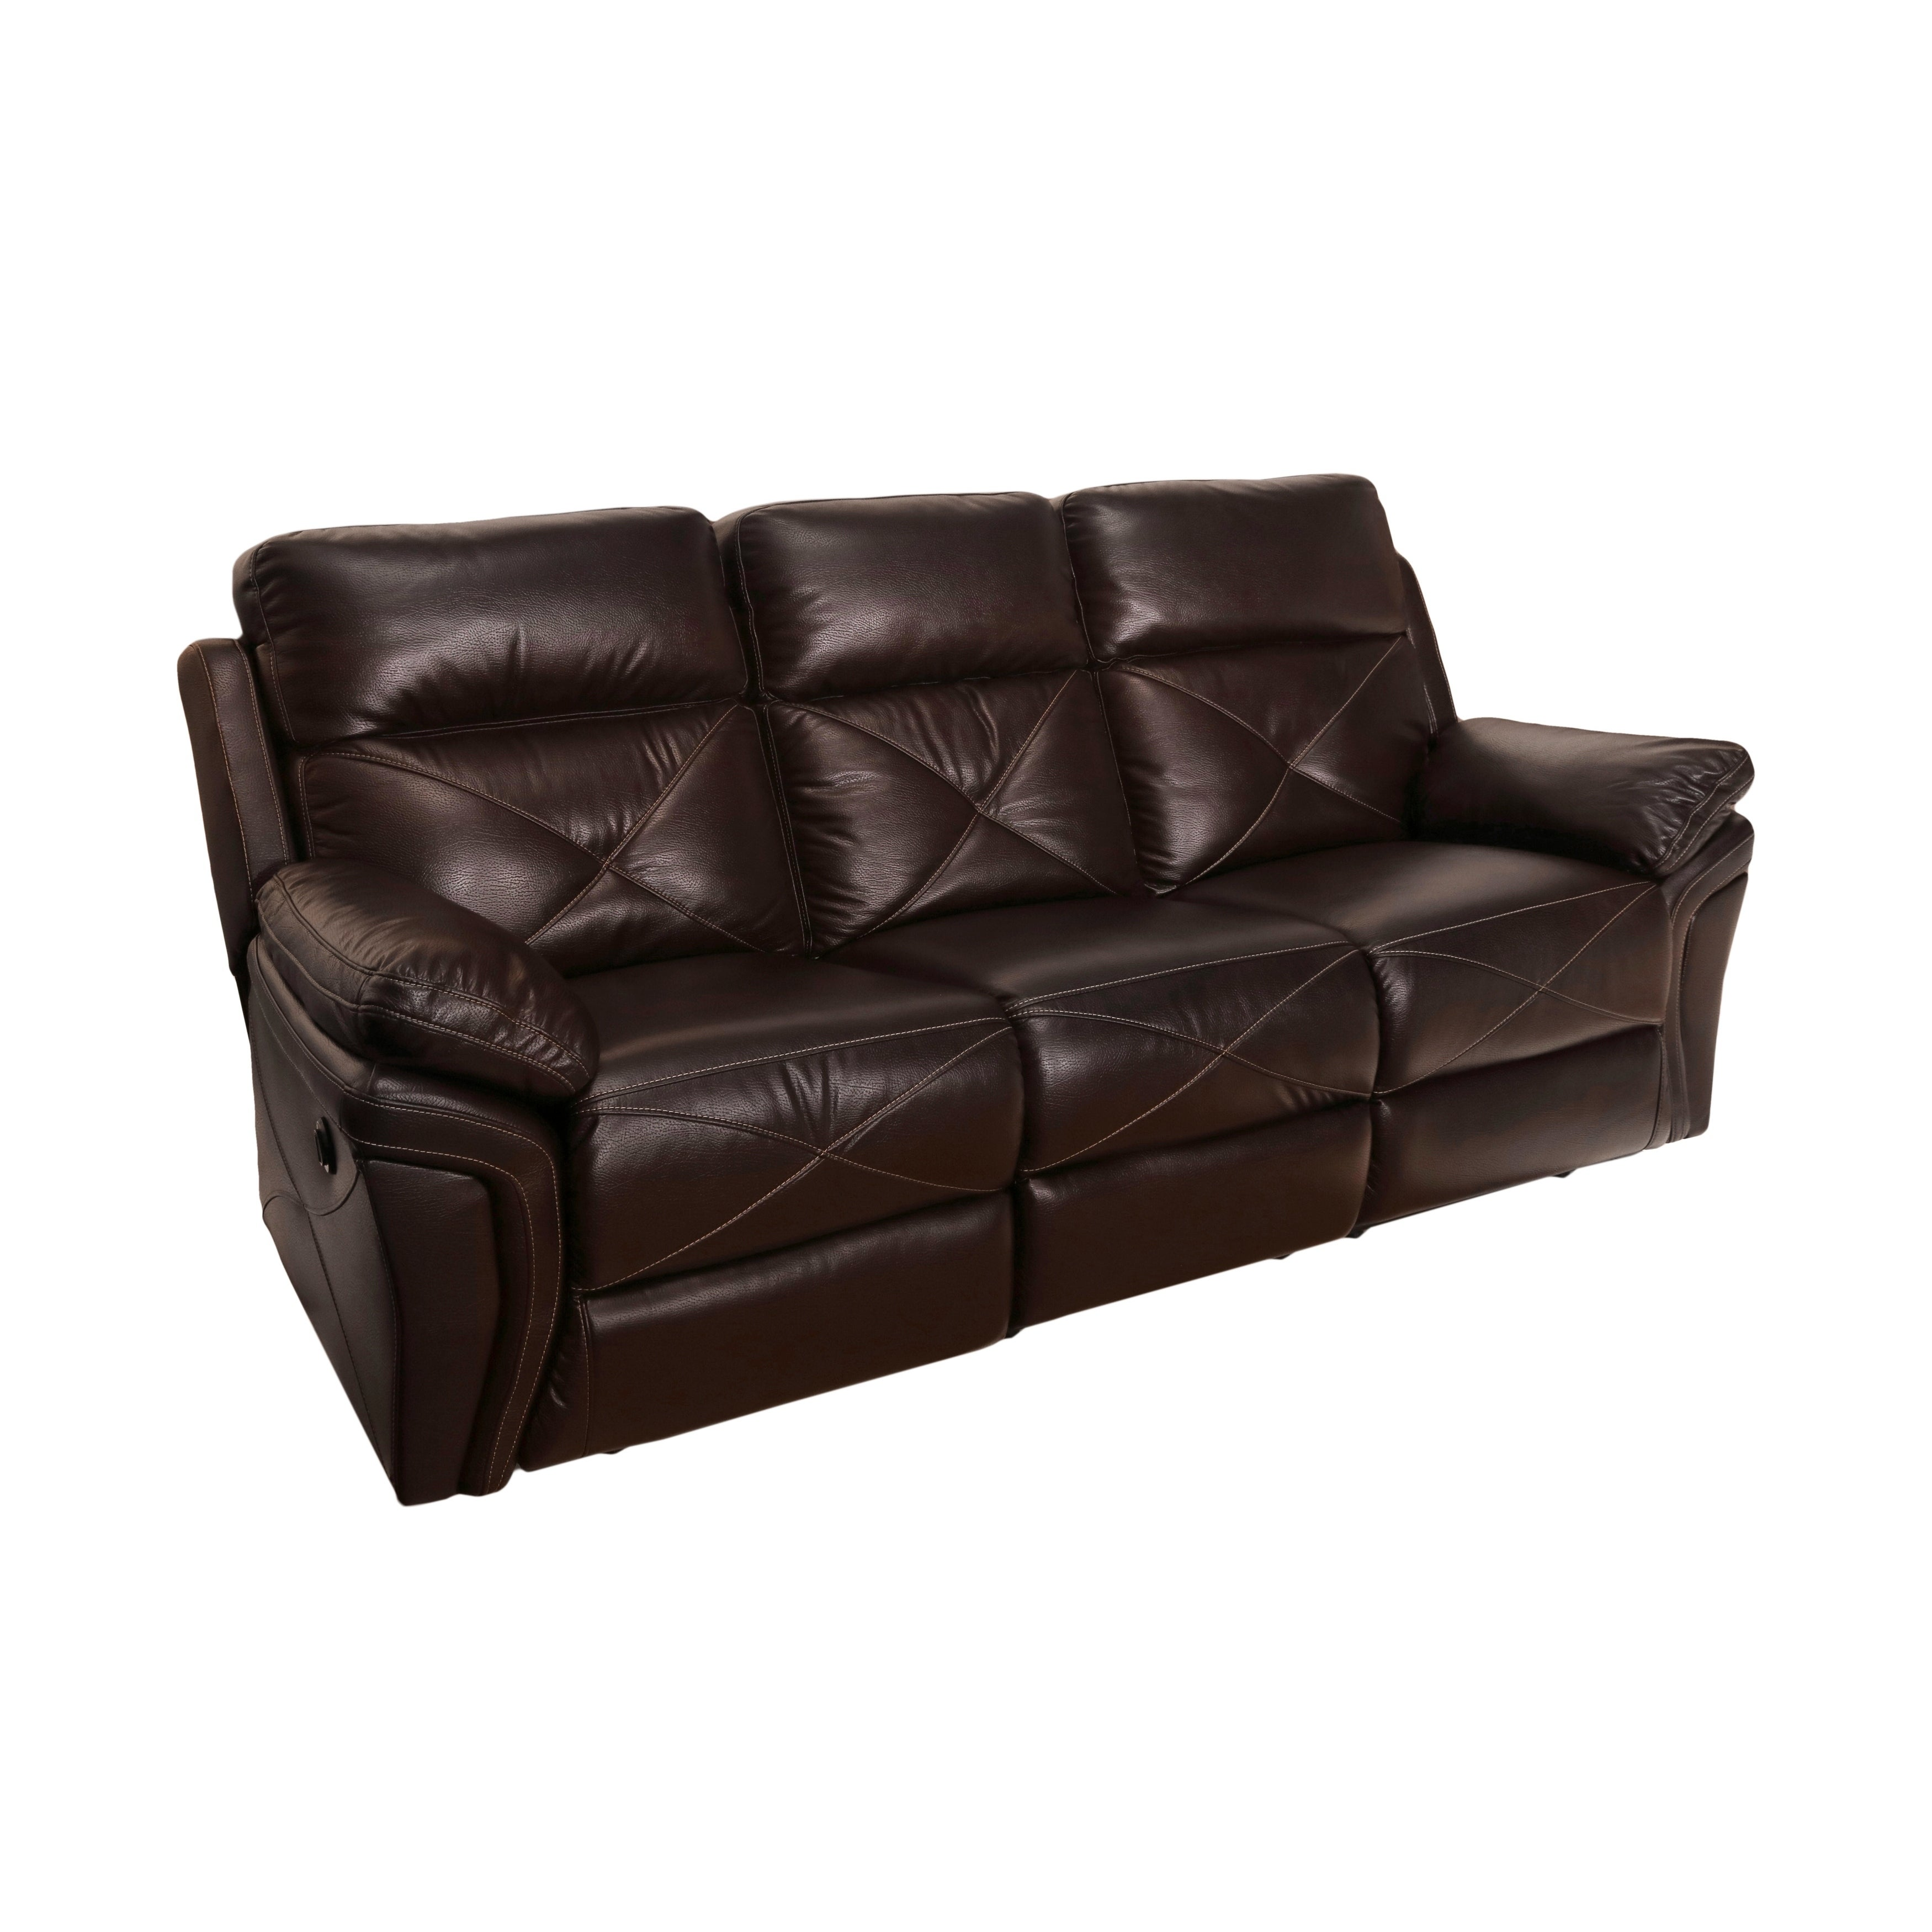 ambrose dual recliner sofa manual power free shipping today